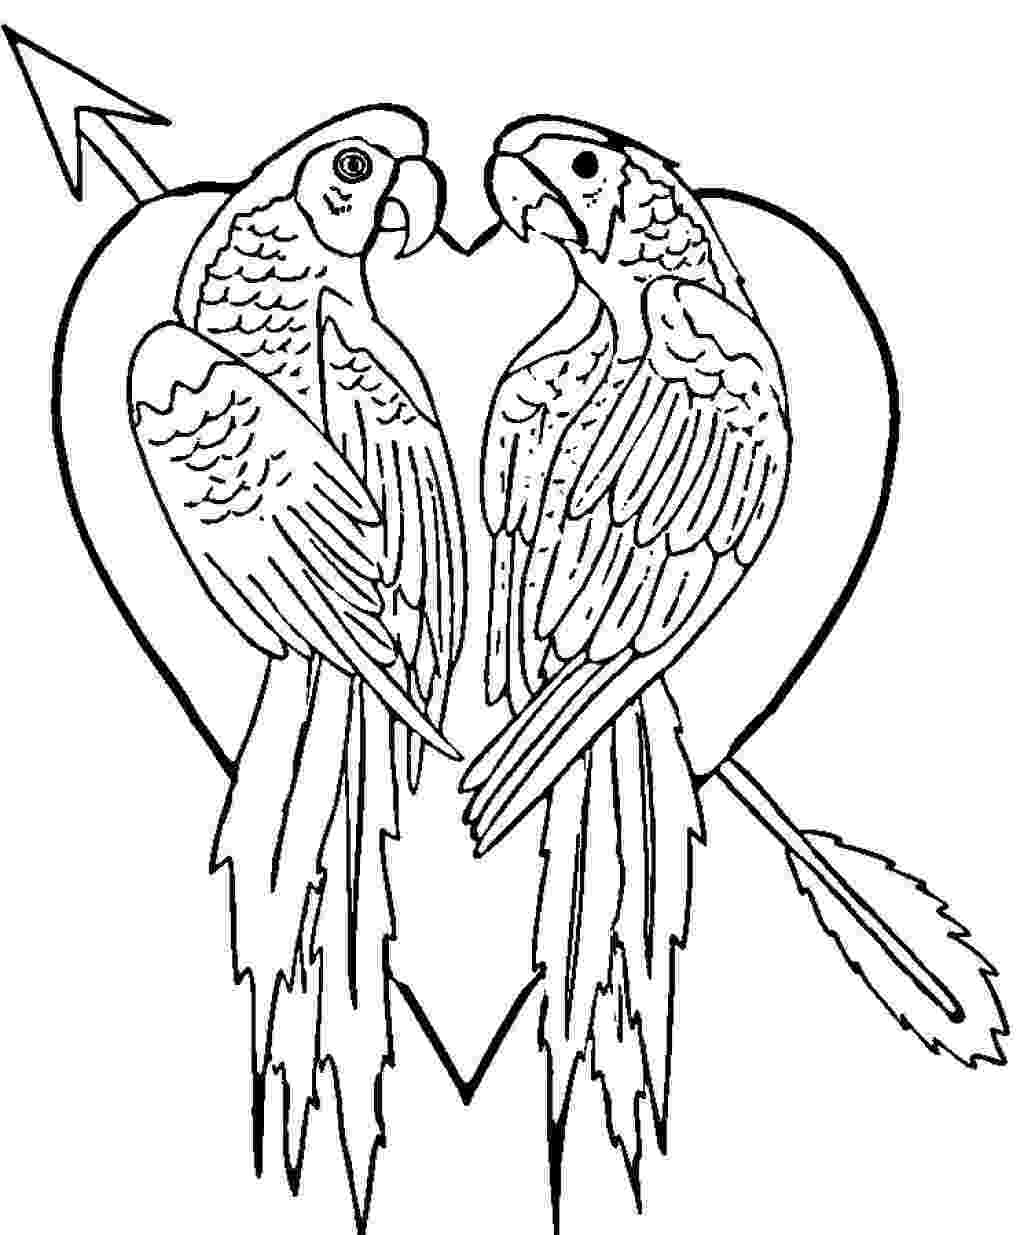 parrot pictures for kids to color free printable parrot coloring pages for kids animal place pictures for kids to color parrot